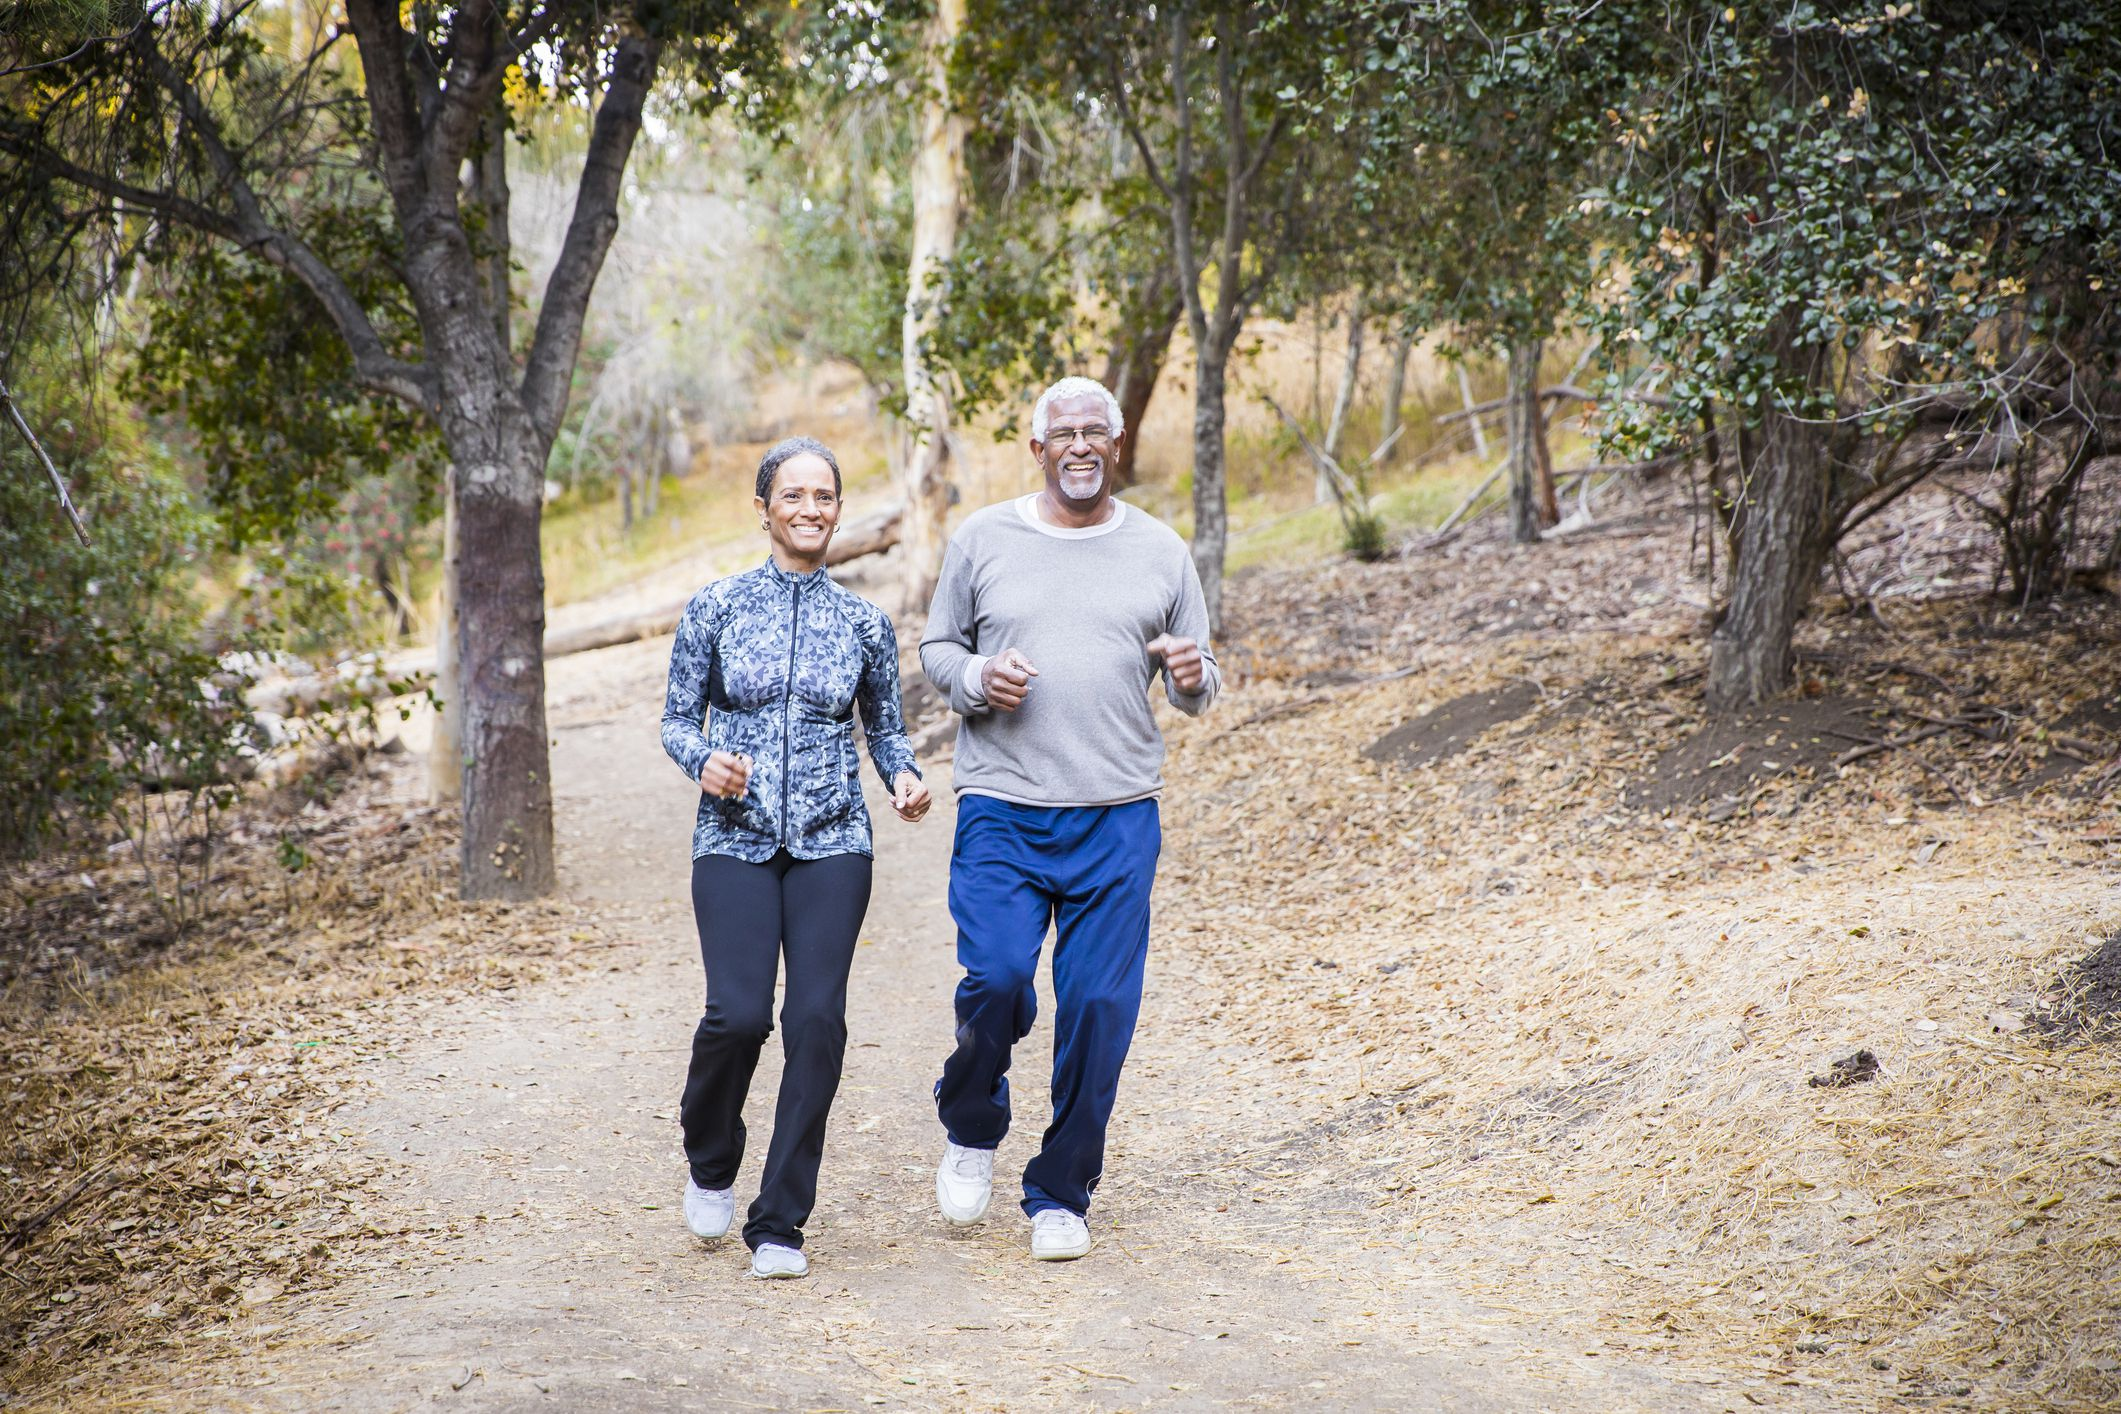 How to Care for Your Health in Your 70s